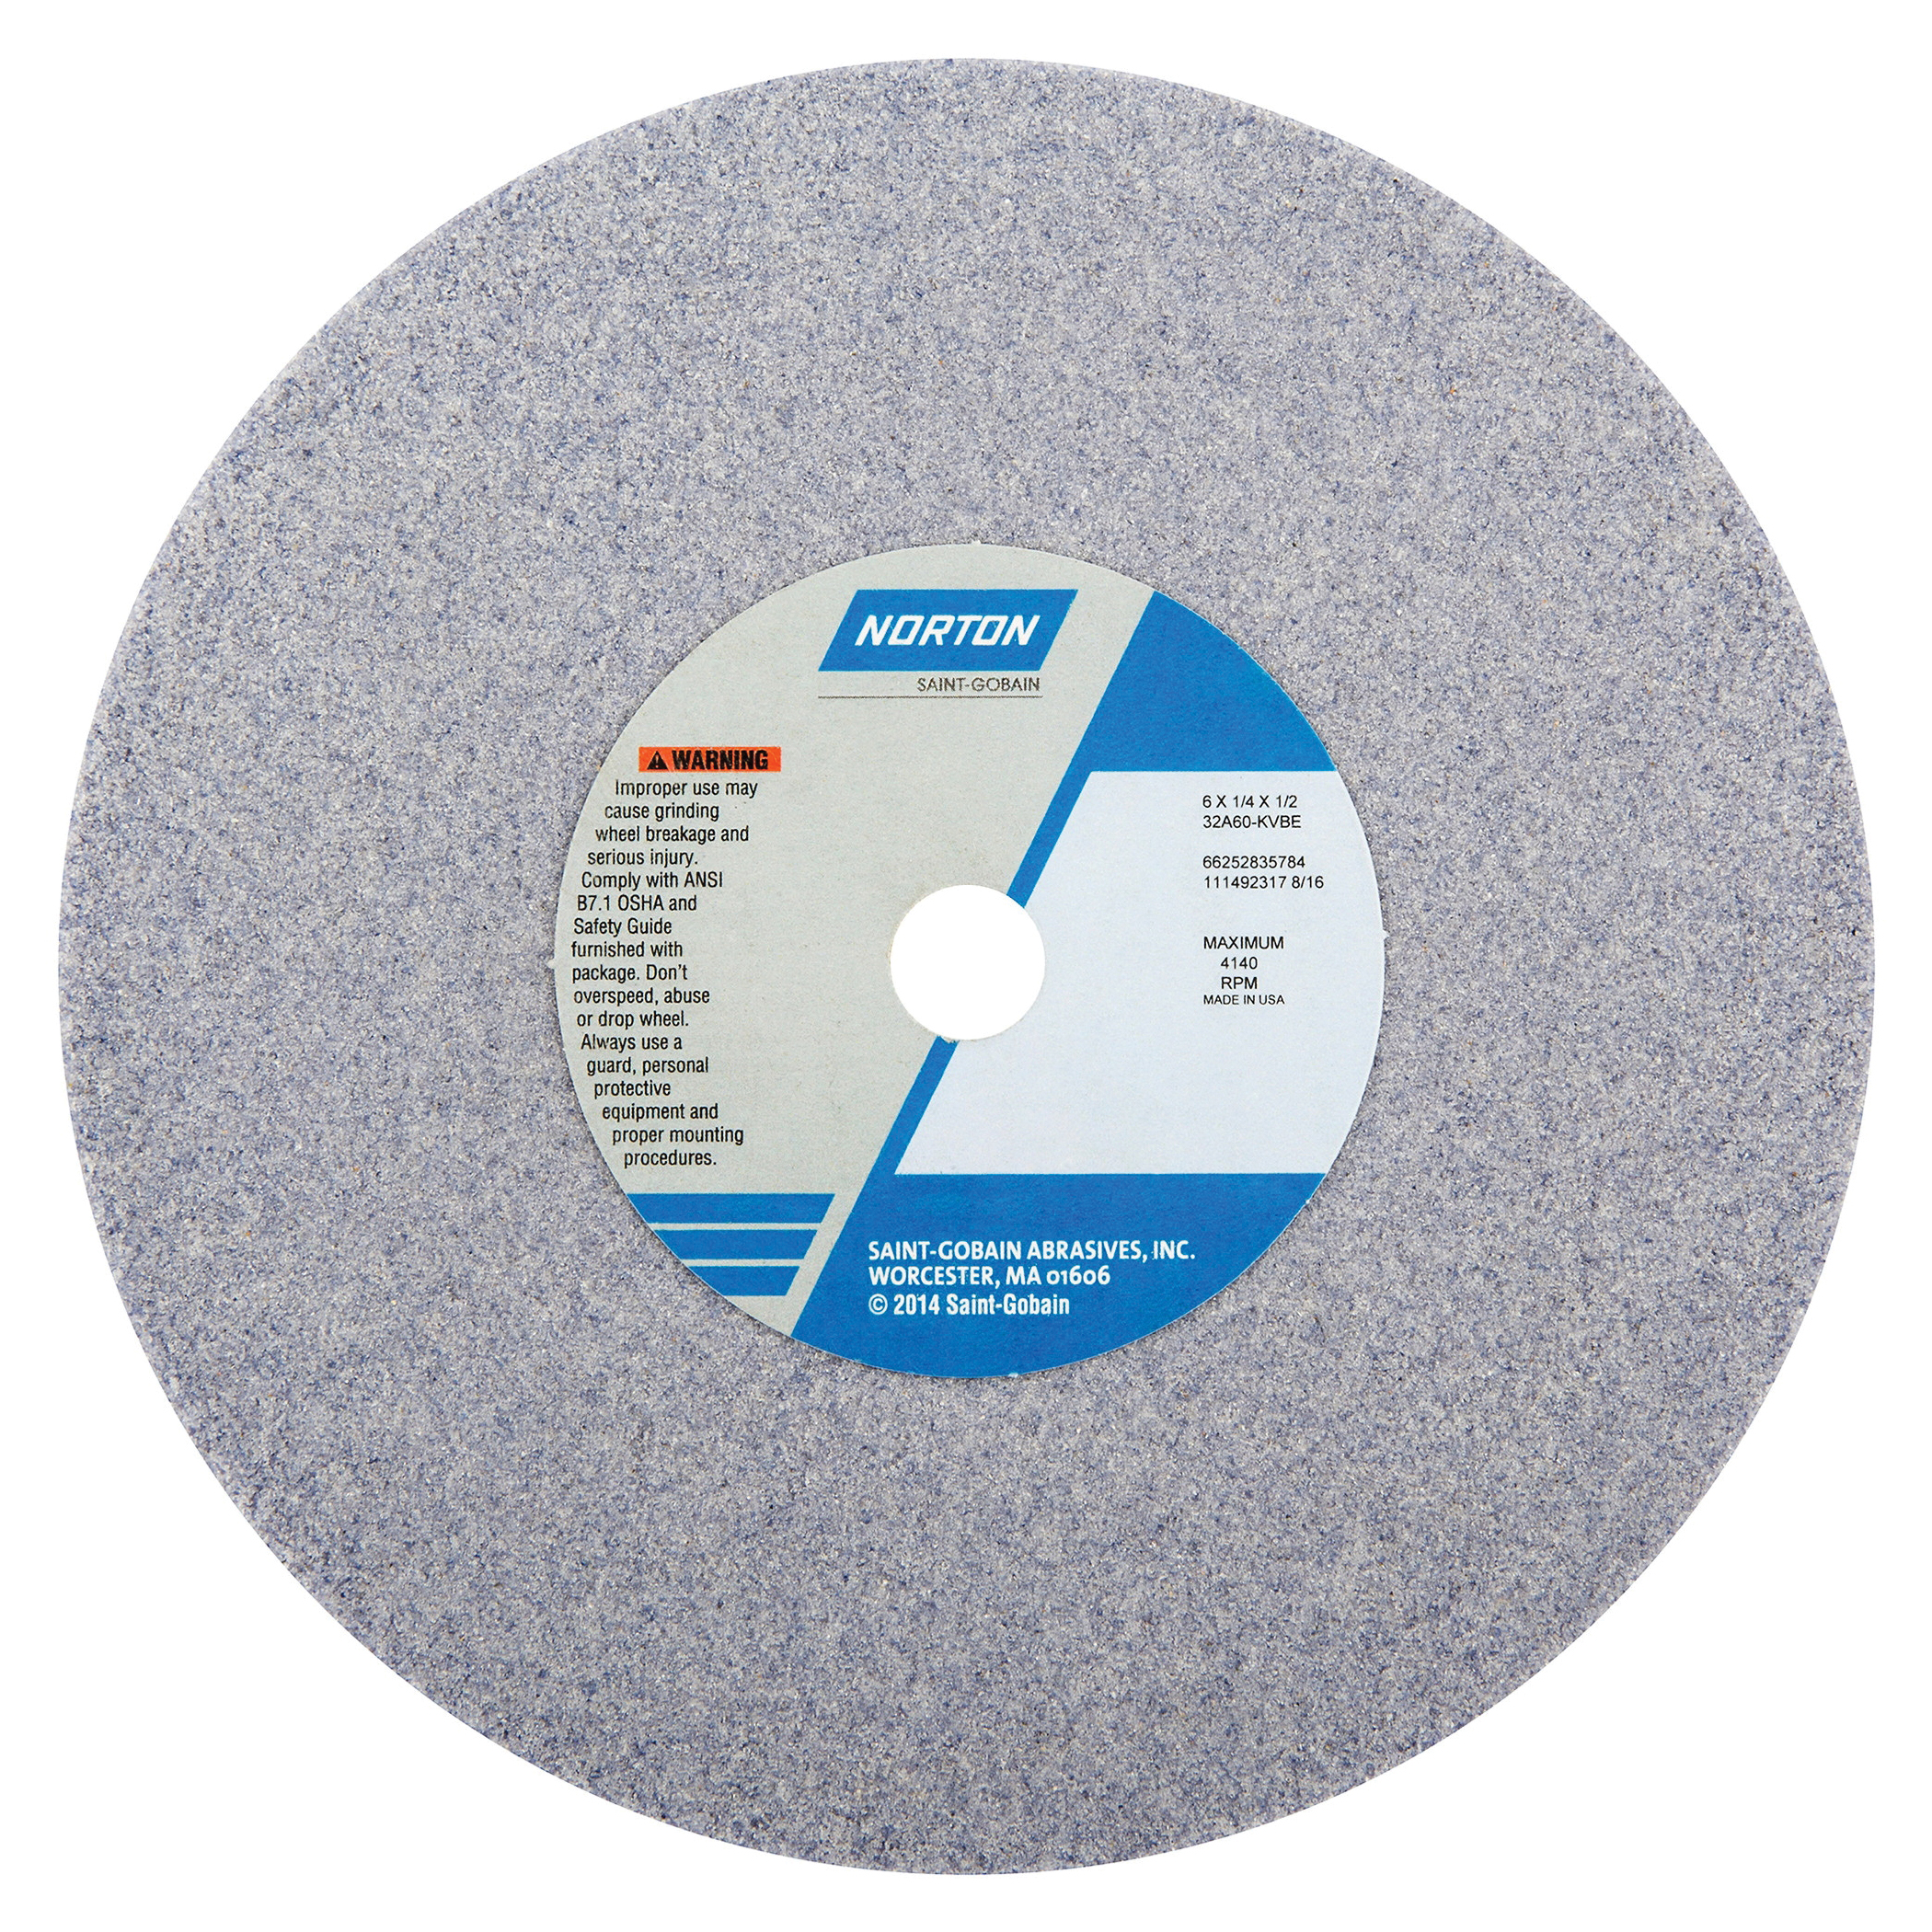 Norton® 66252835784 32A Straight Toolroom Wheel, 6 in Dia x 1/4 in THK, 1/2 in Center Hole, 60 Grit, Aluminum Oxide Abrasive